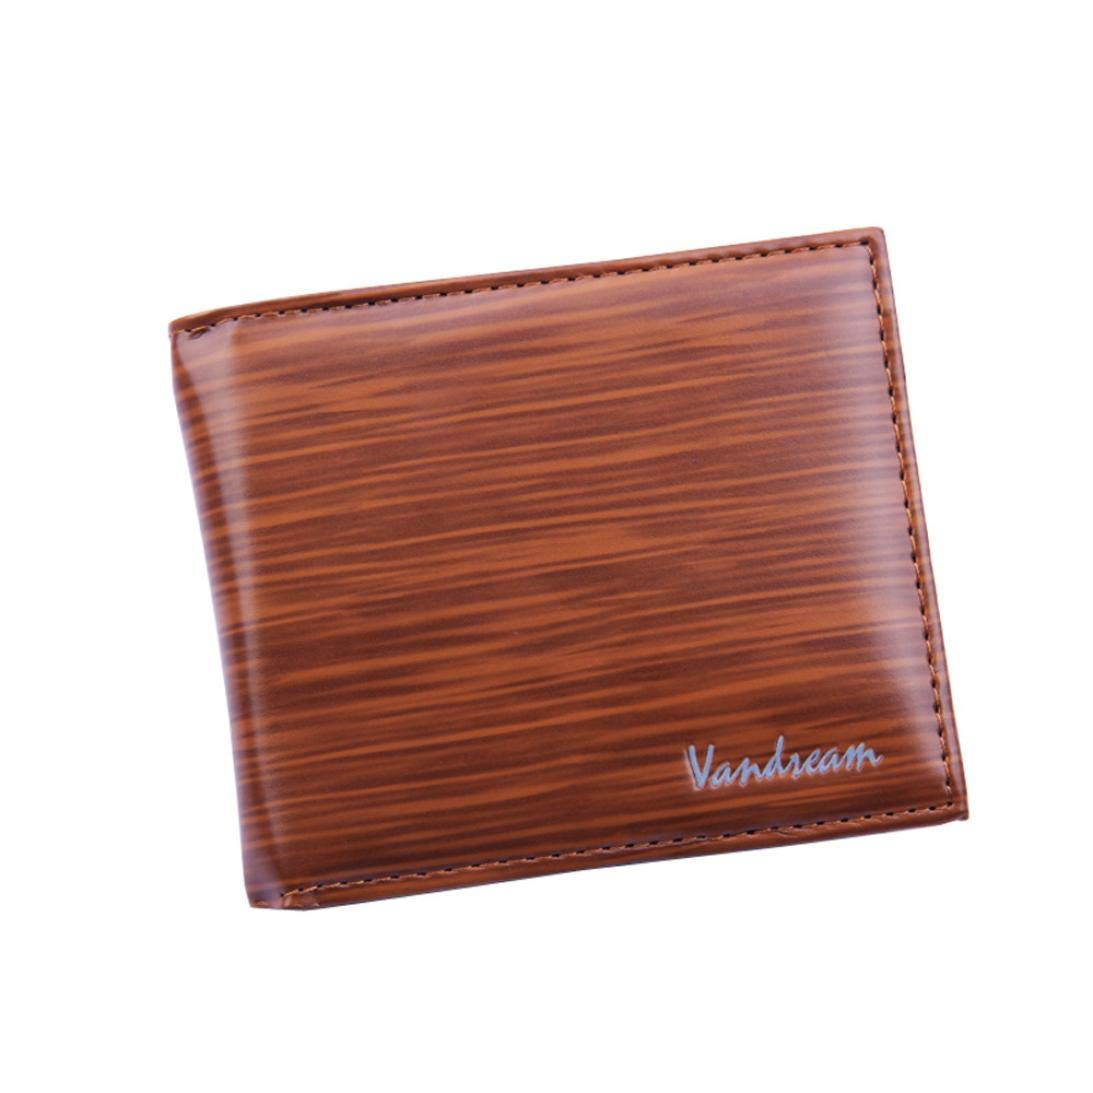 Leather Men's Short Wallet Fashion Bifold Mens Casual Wallet Solid Wallets With Pocket Coin Wallets